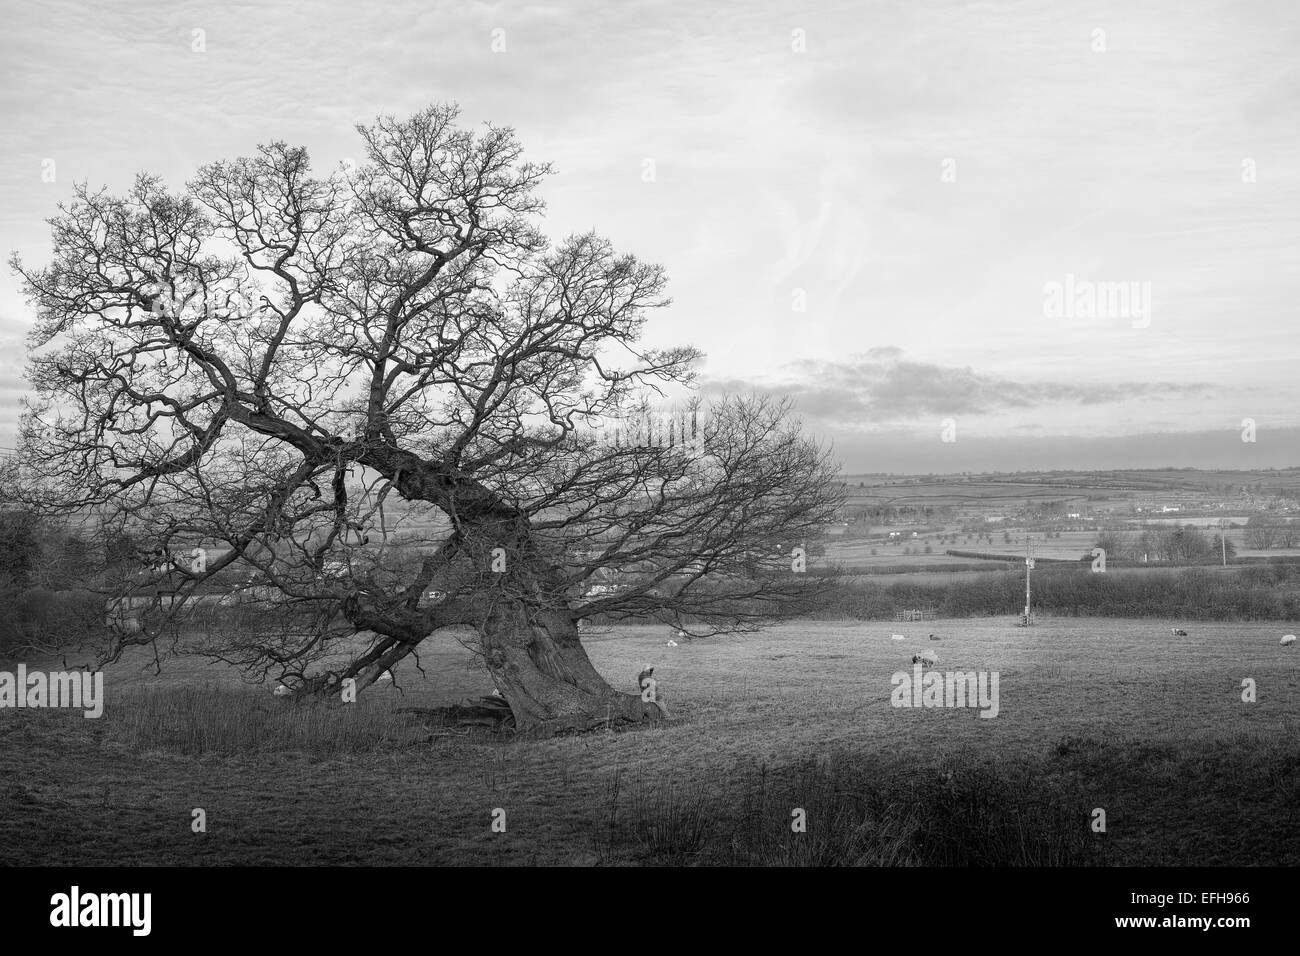 Man sitting under an oak tree on a sunny winter day, looking across the Welland valley. - Stock Image